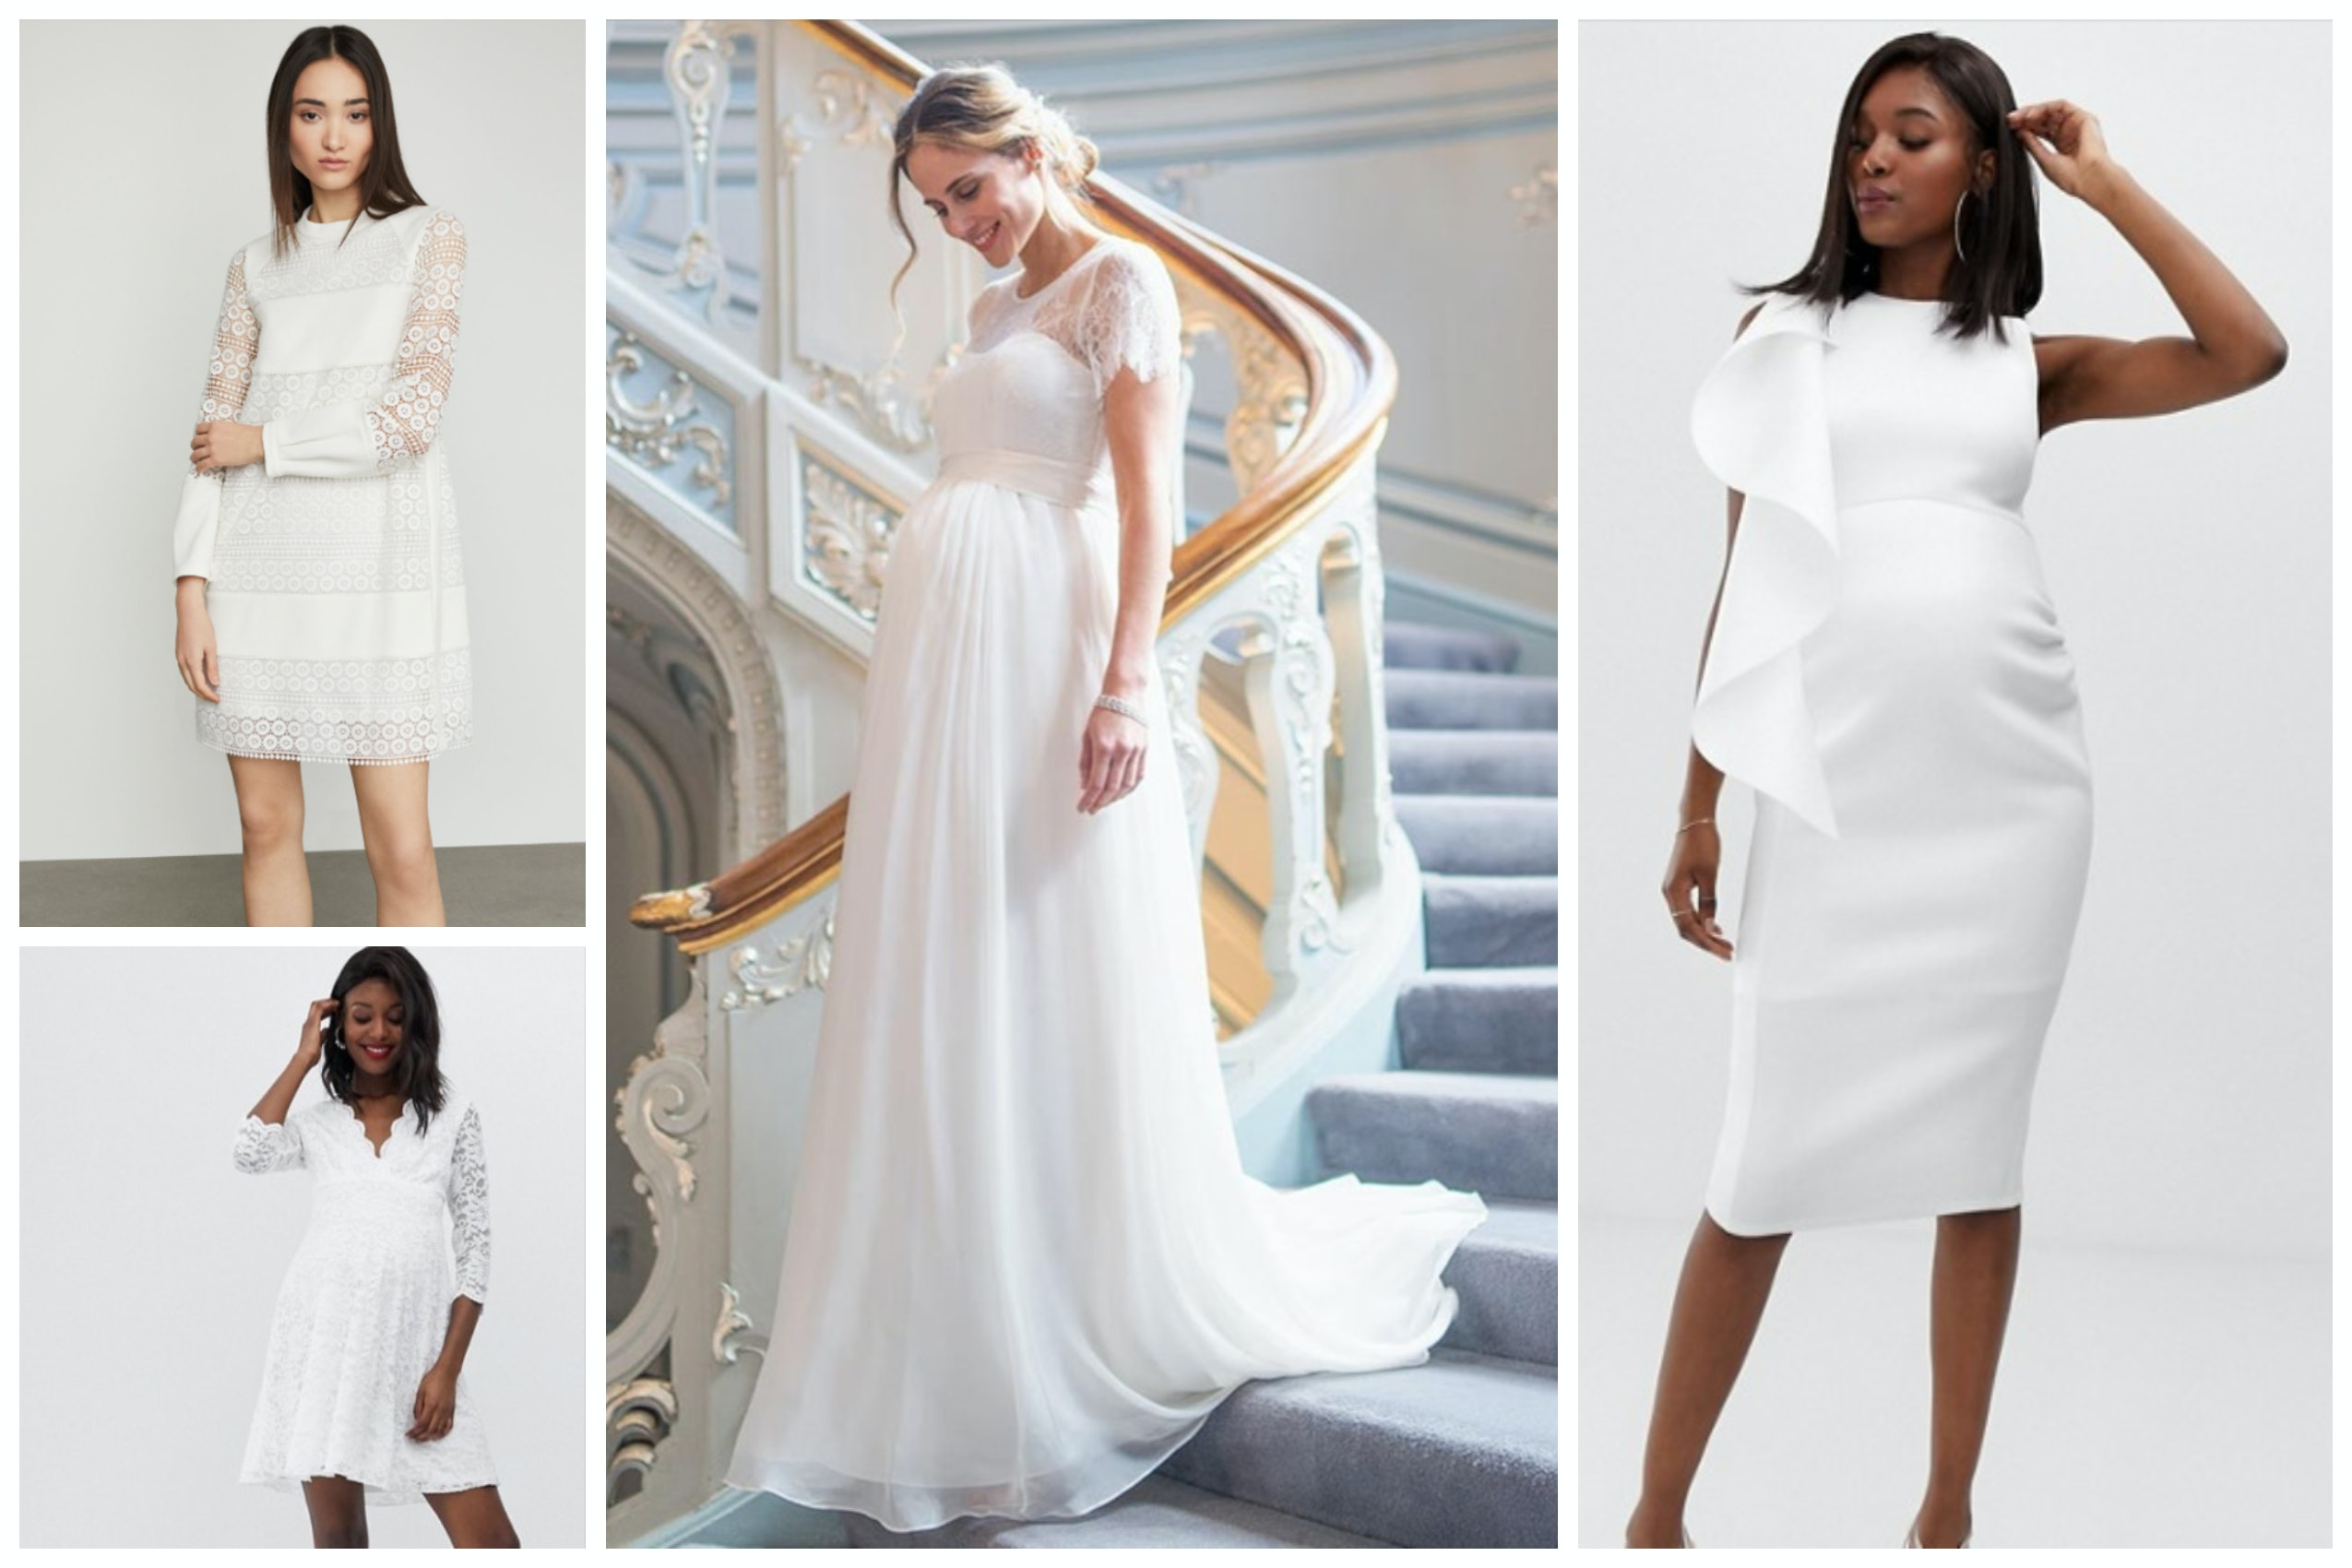 15 Wedding Dresses For Pregnant Women That Will Make You Glow Even More,Christian Dior Wedding Dress For Sale